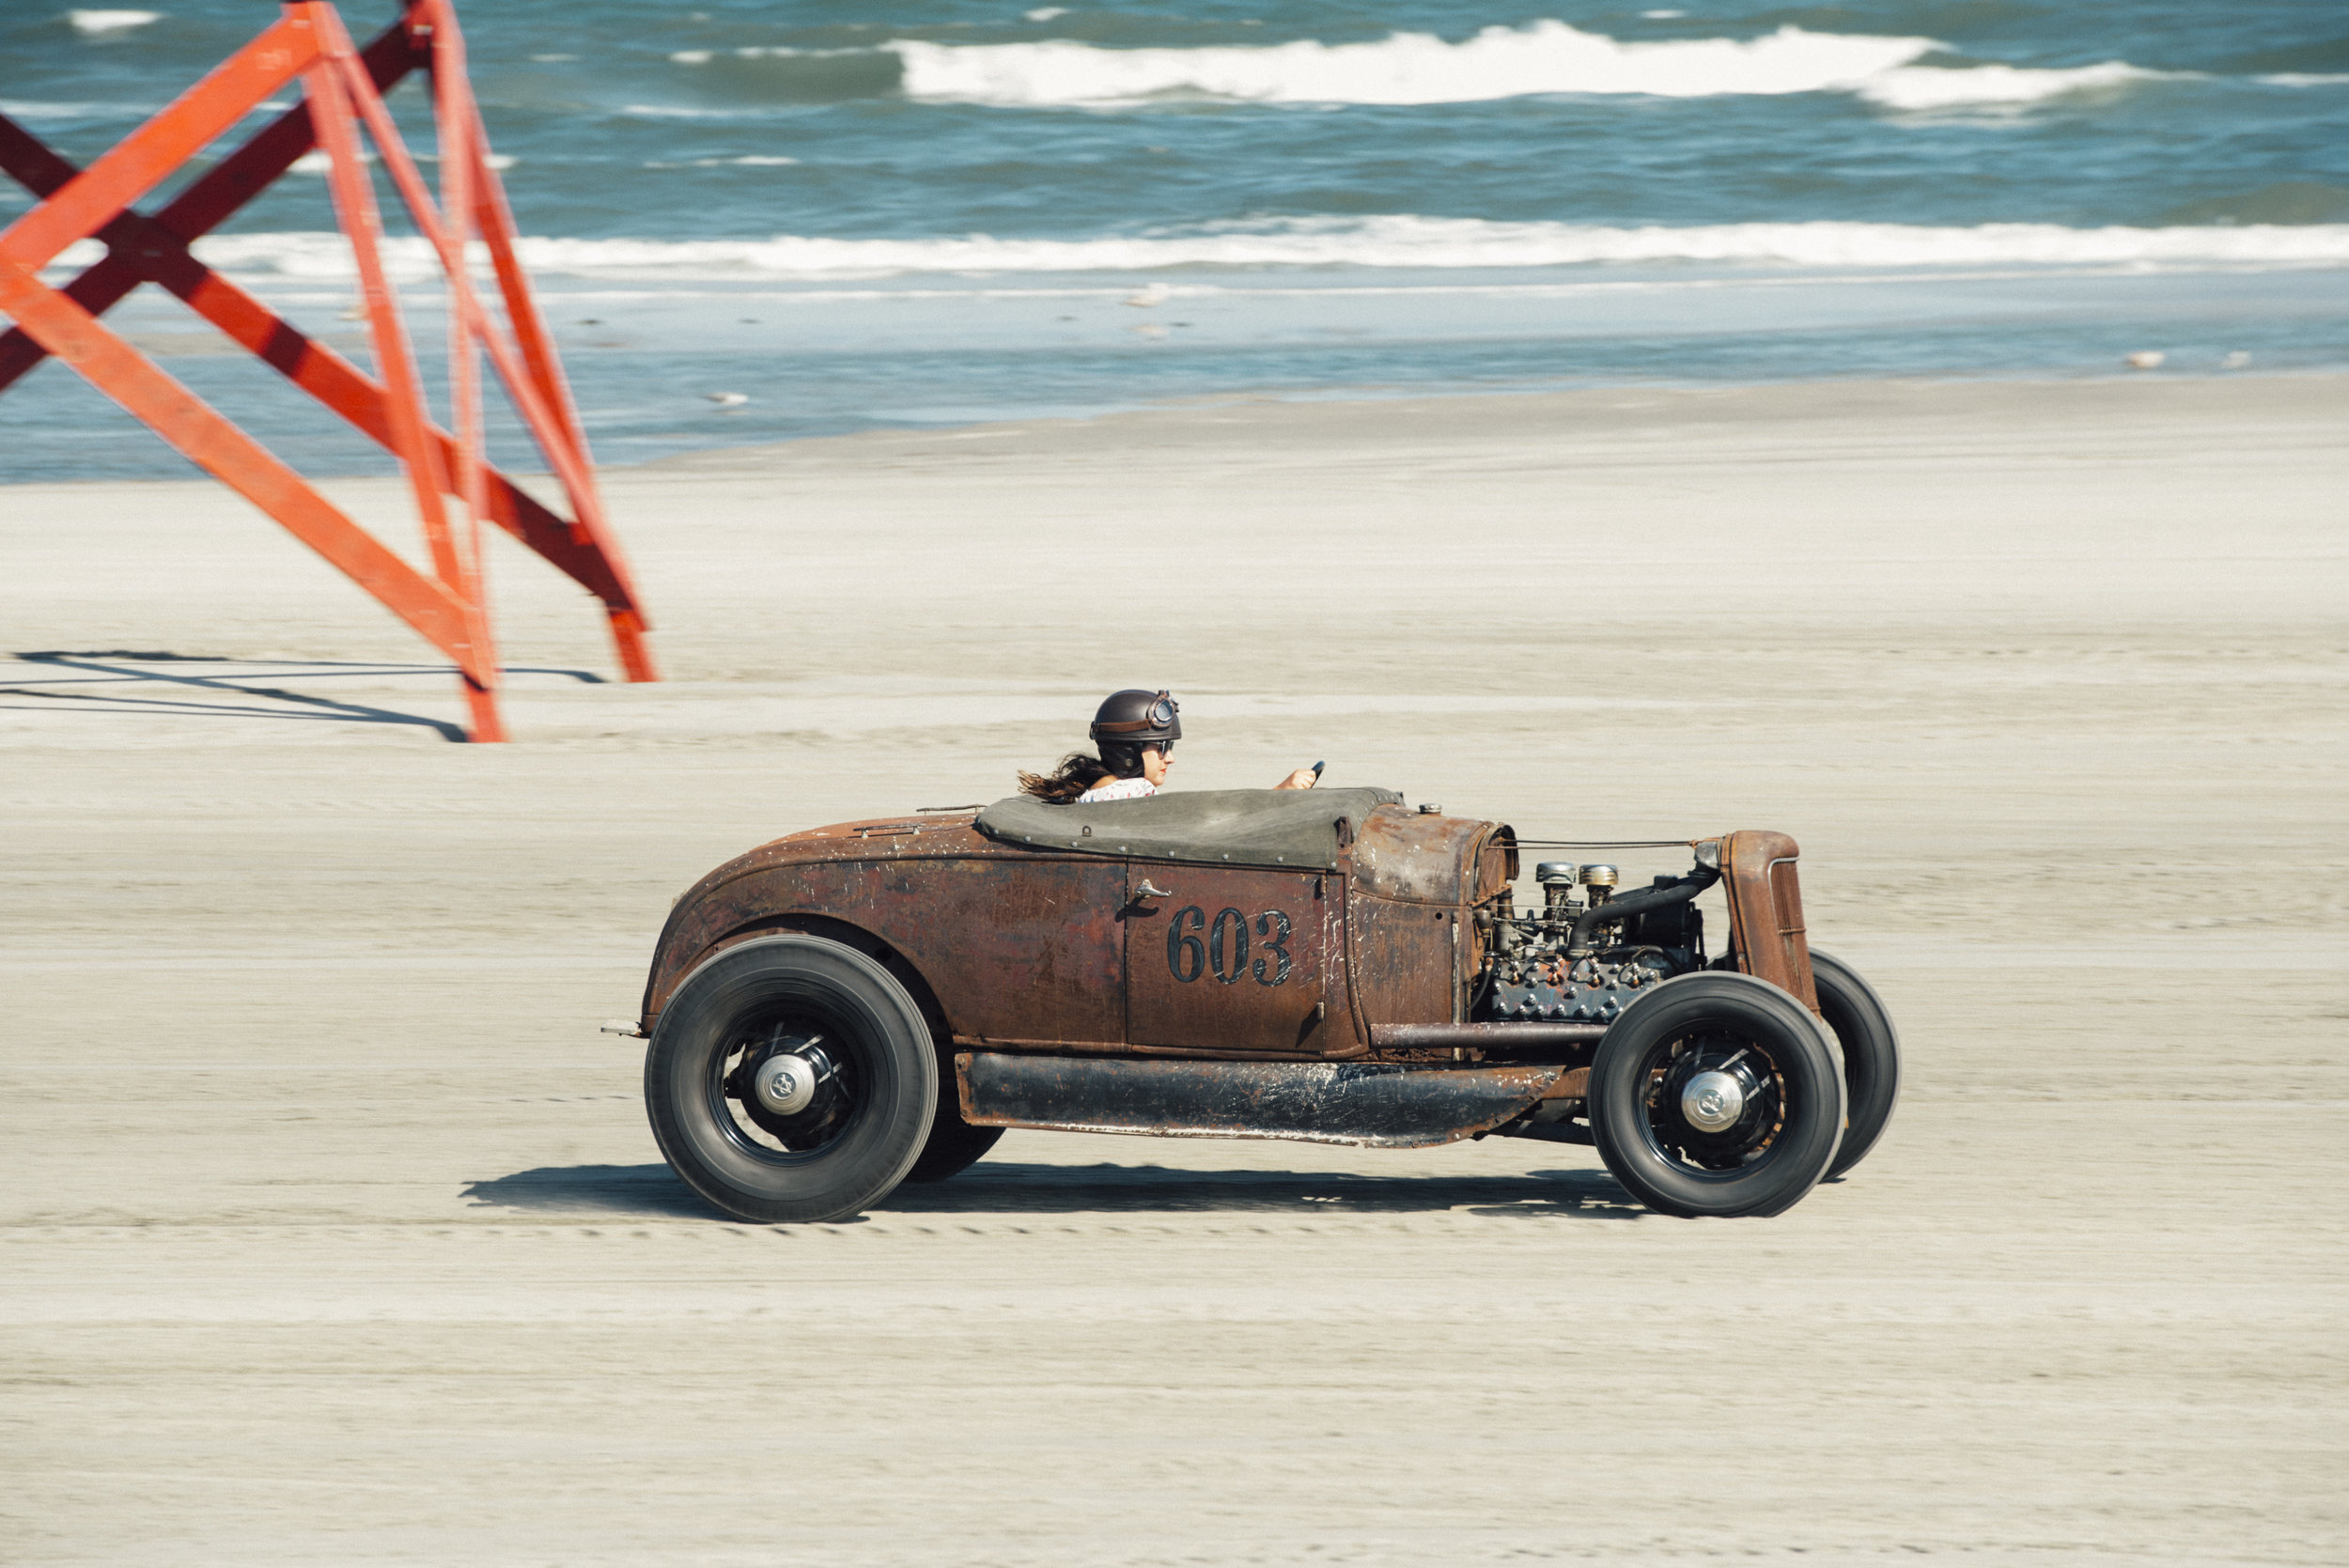 Lisa English ripping down the beach in her V8 #603.